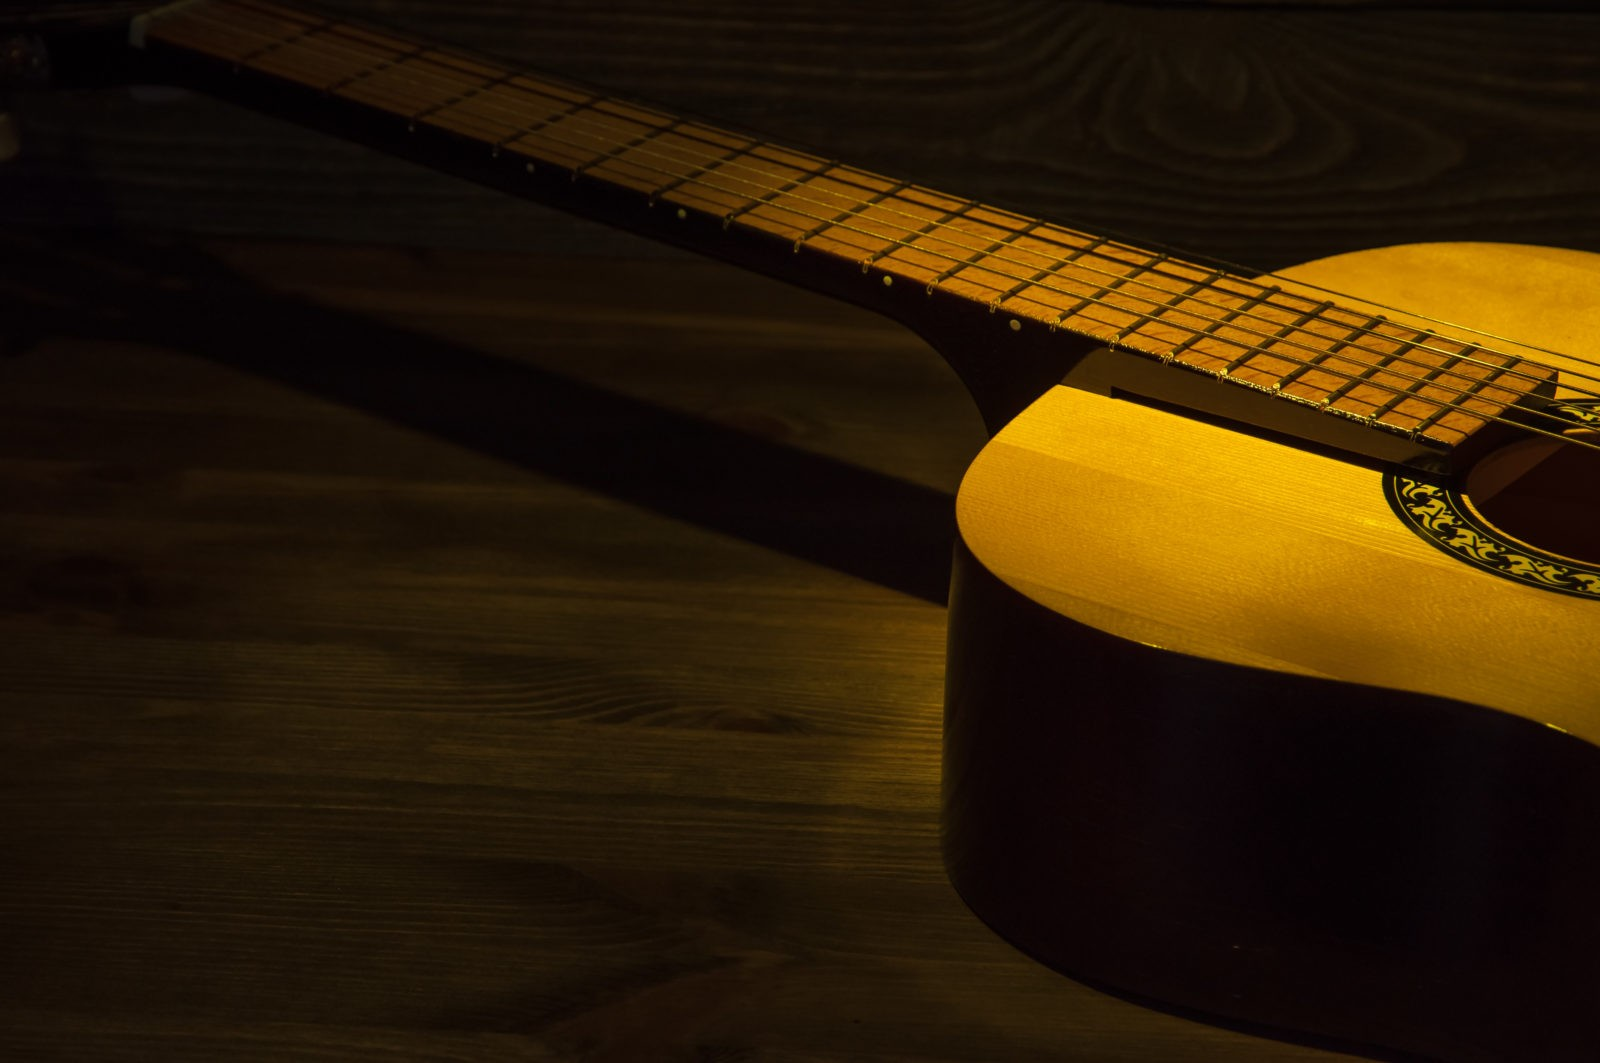 Acoustic guitar on a wooden table lit by a ray of light. Side view.